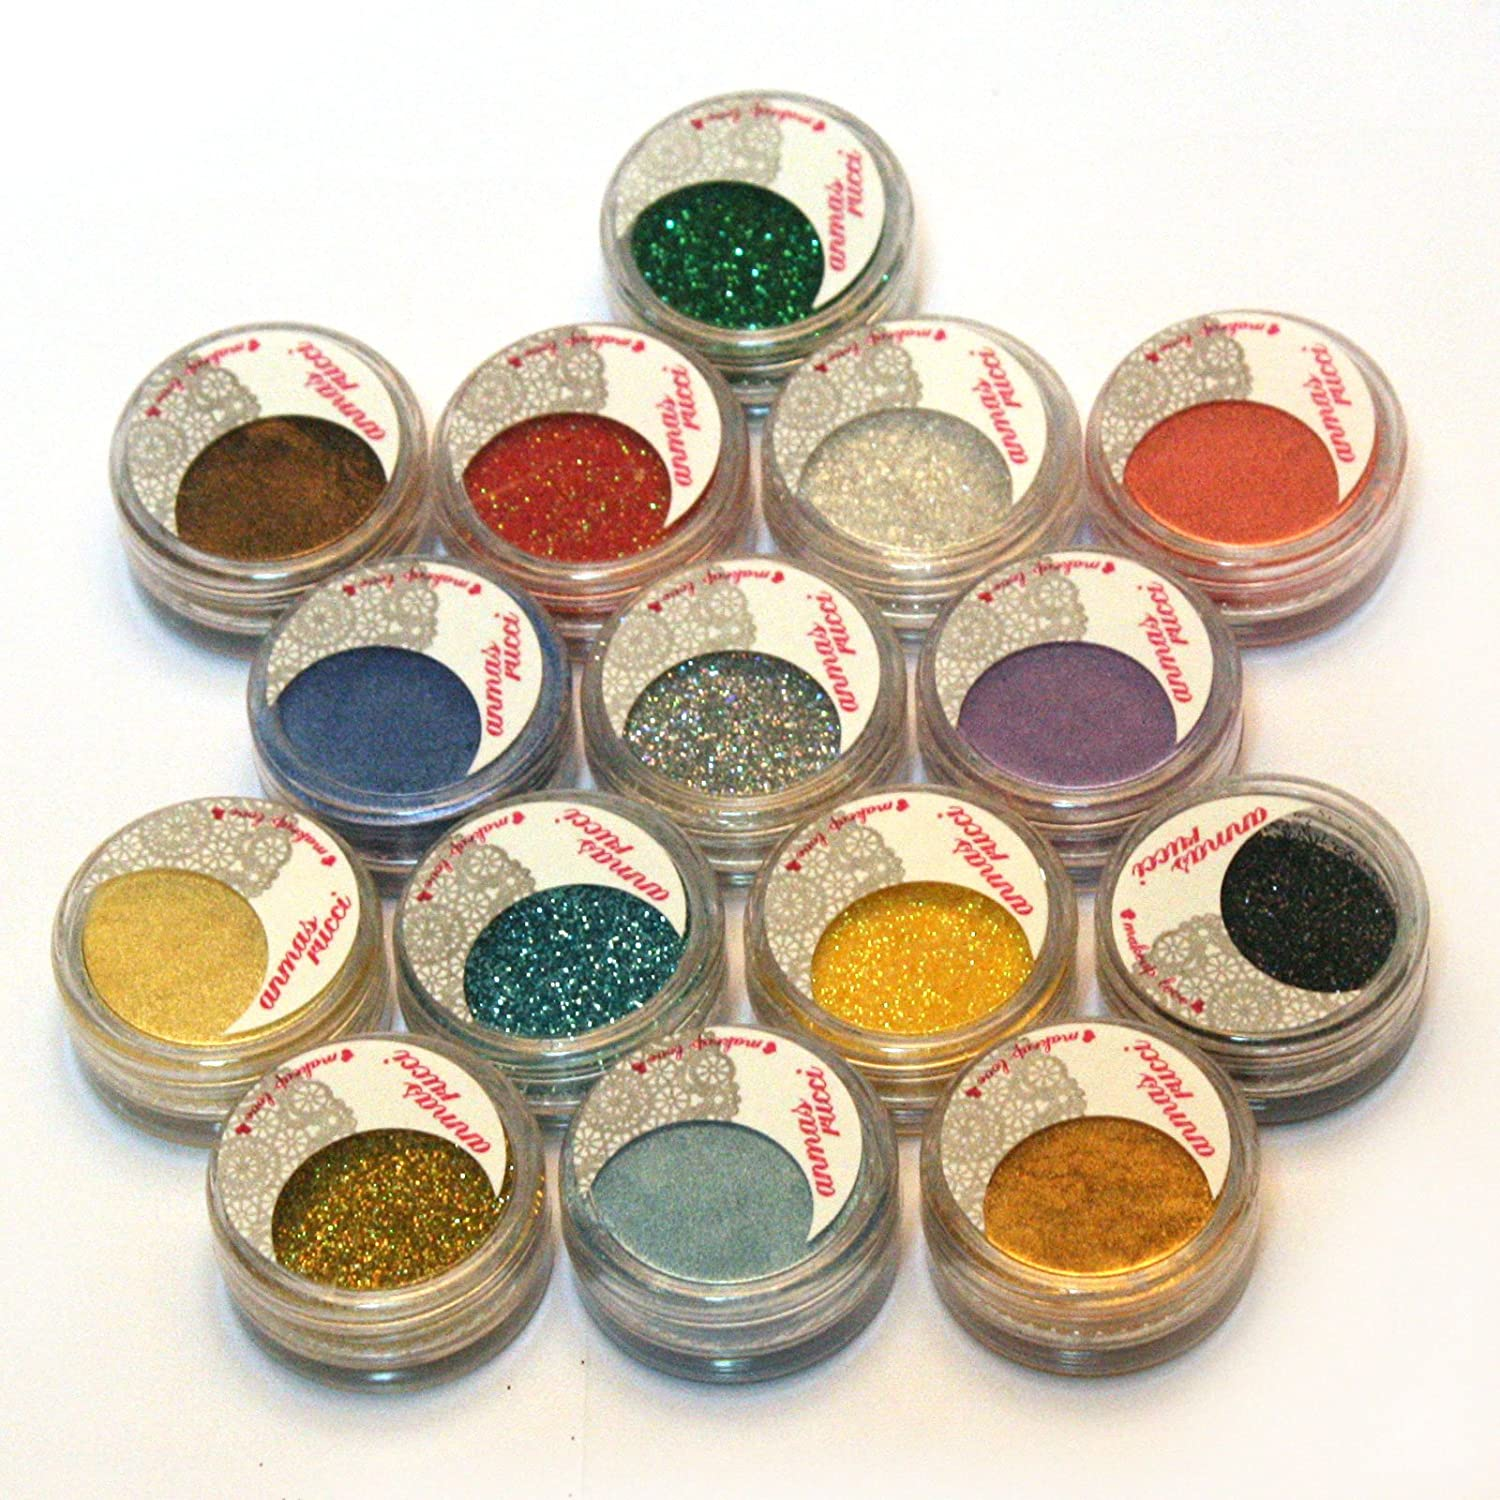 15 Warm Color Glitter Shimmer Pearl Loose Eyeshadow Pigments Mineral Eye Shadow Dust Powder Makeup Party Cosmetic Set #A